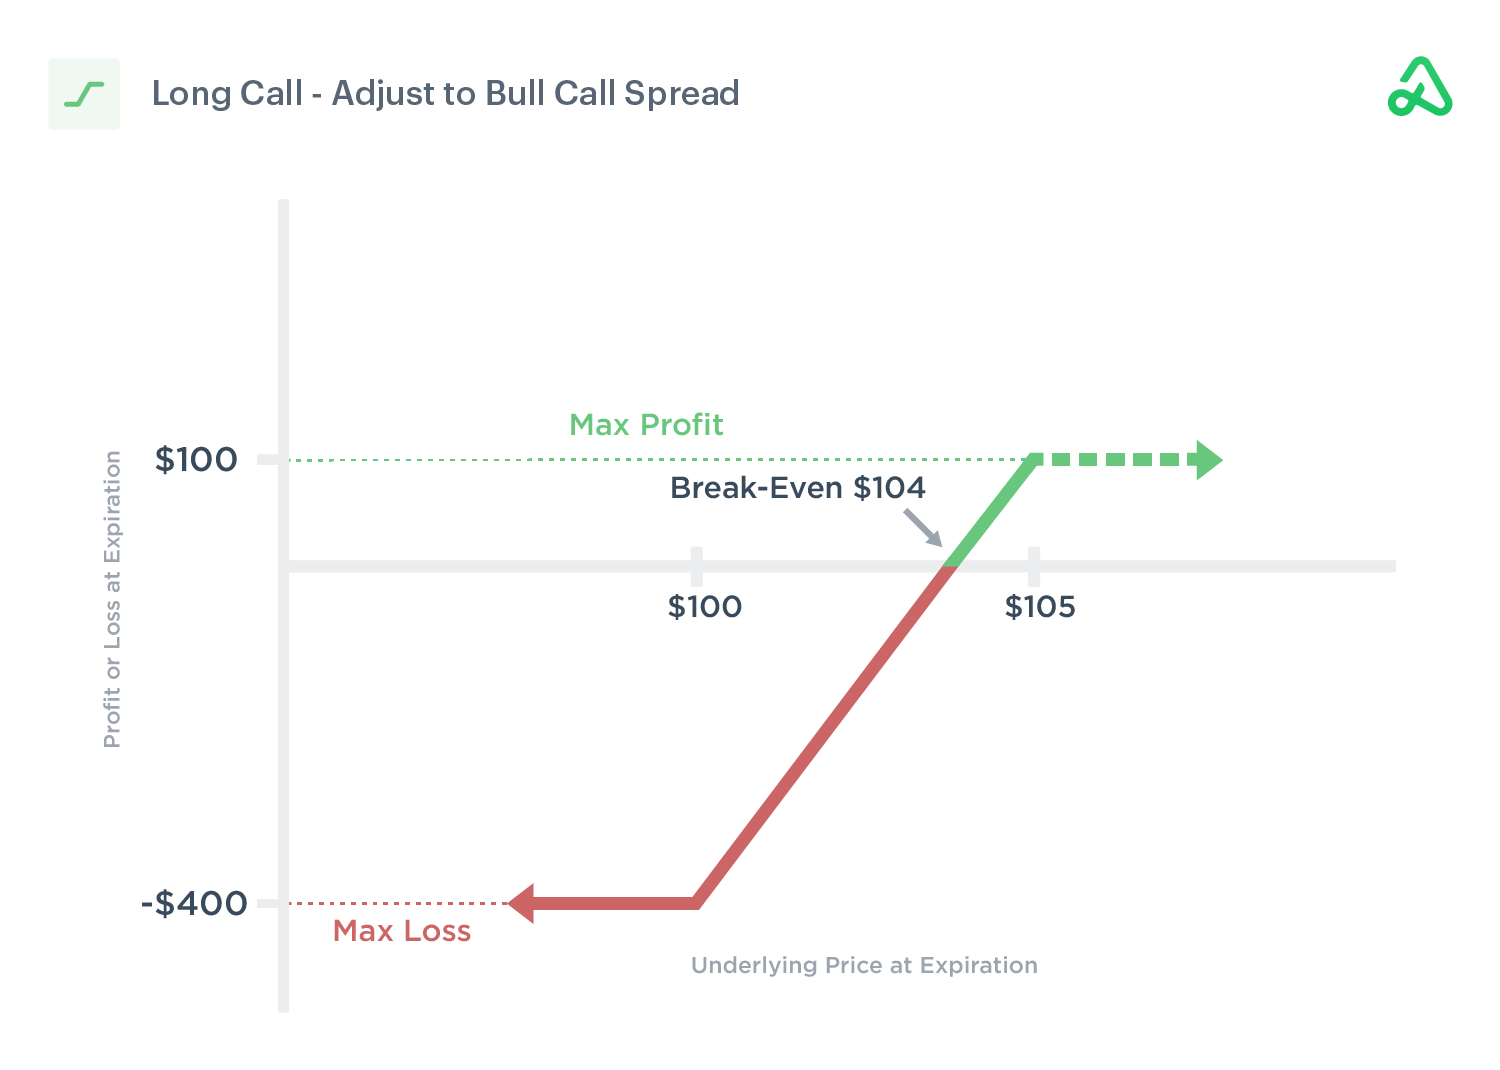 Image of a long call position adjusted to a Bull Call Spread